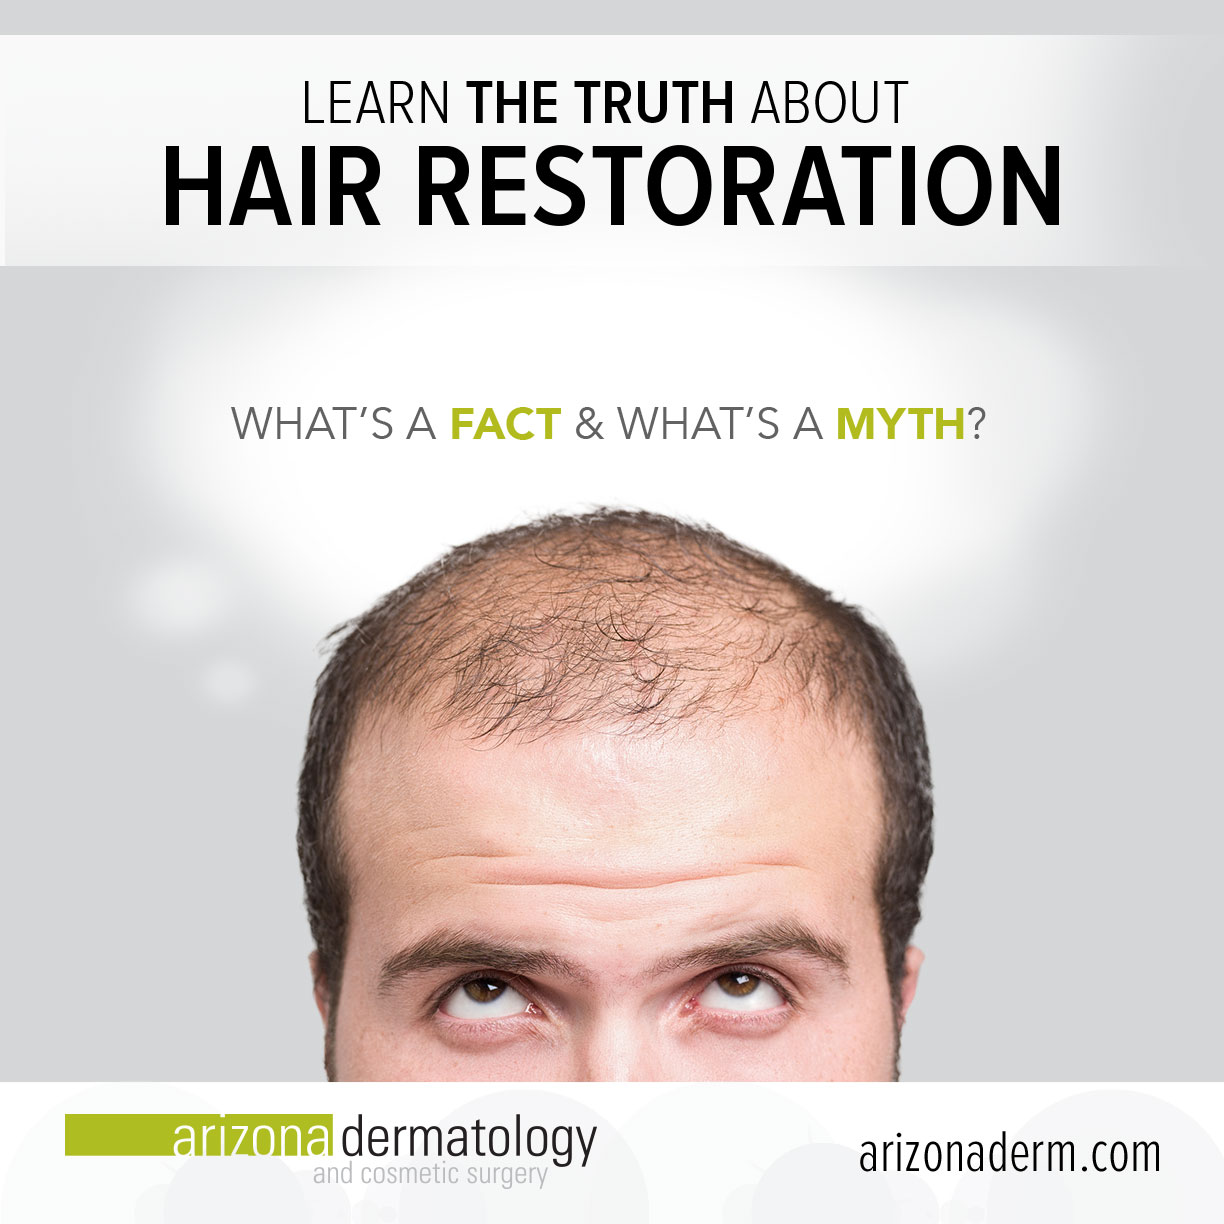 Common Myths About Hair Restoration